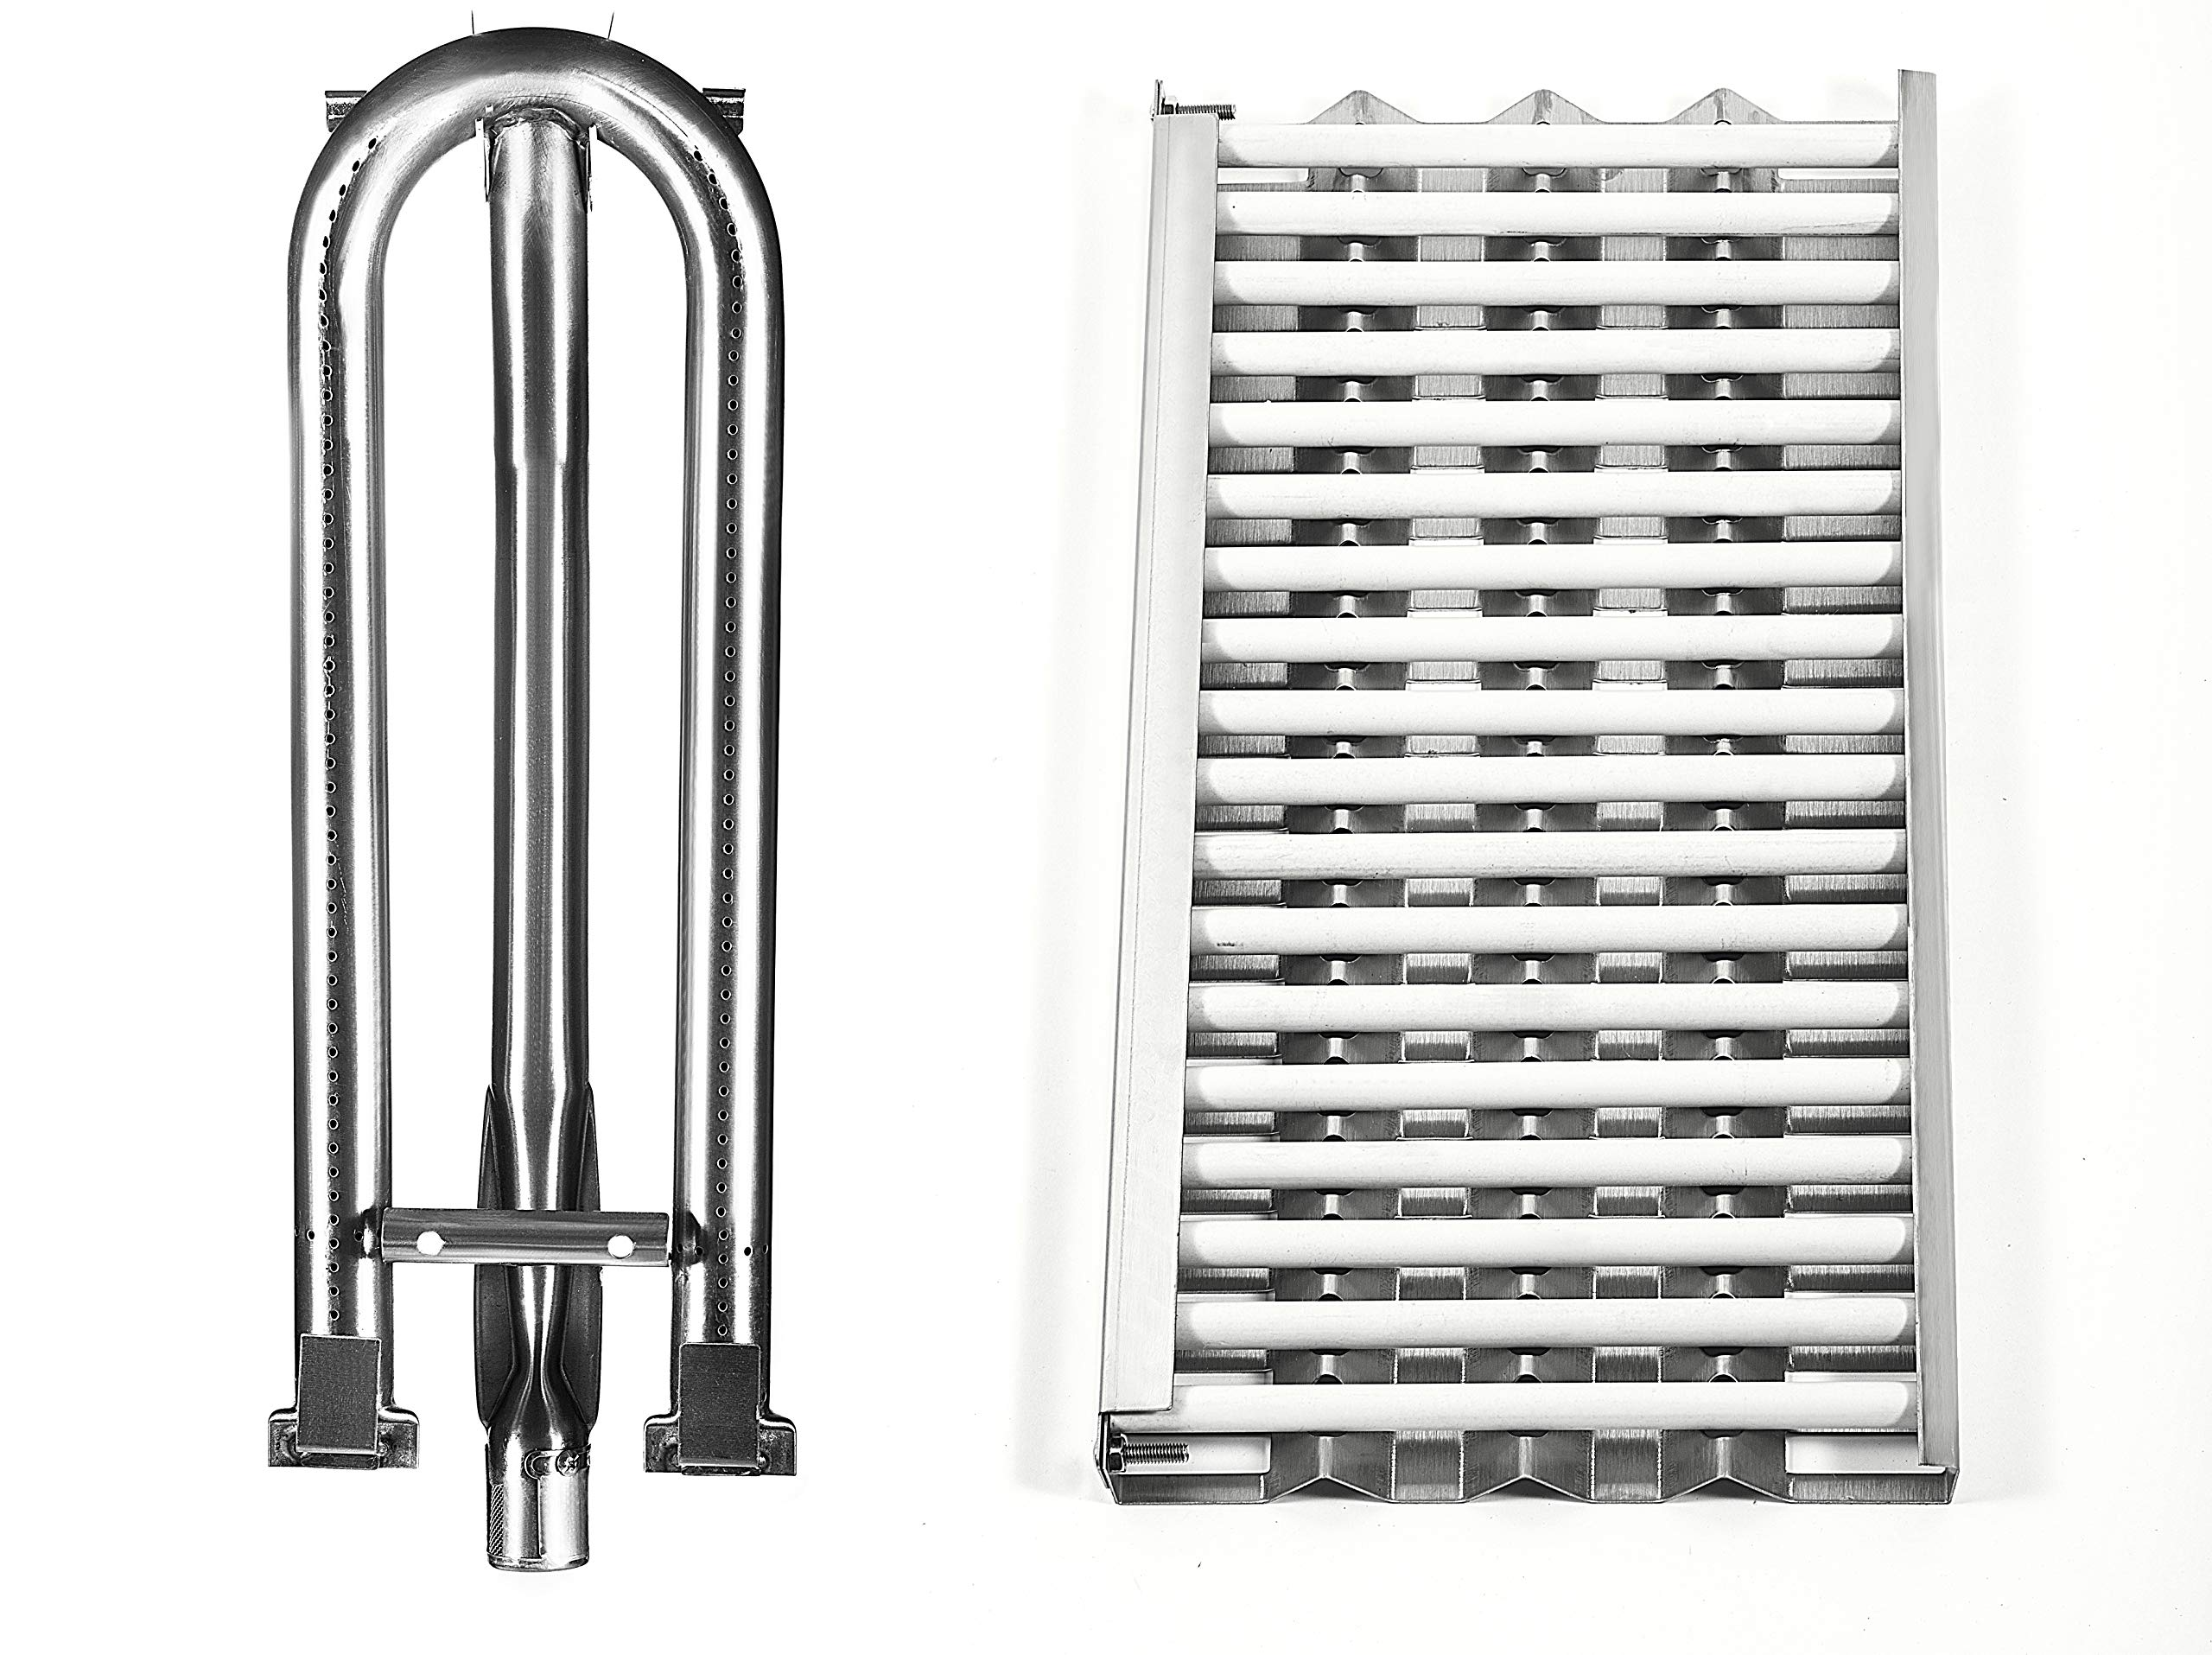 Replace parts Replacement for DCS 27 Series, 27DBQ, 27DSBQ, BGA36-BQAR, BGA36-BQARL, 30/36 / 48 Inch Gas Grill Models (Heat Plates with 18 Ceramic Rods & Burner) by Replace parts